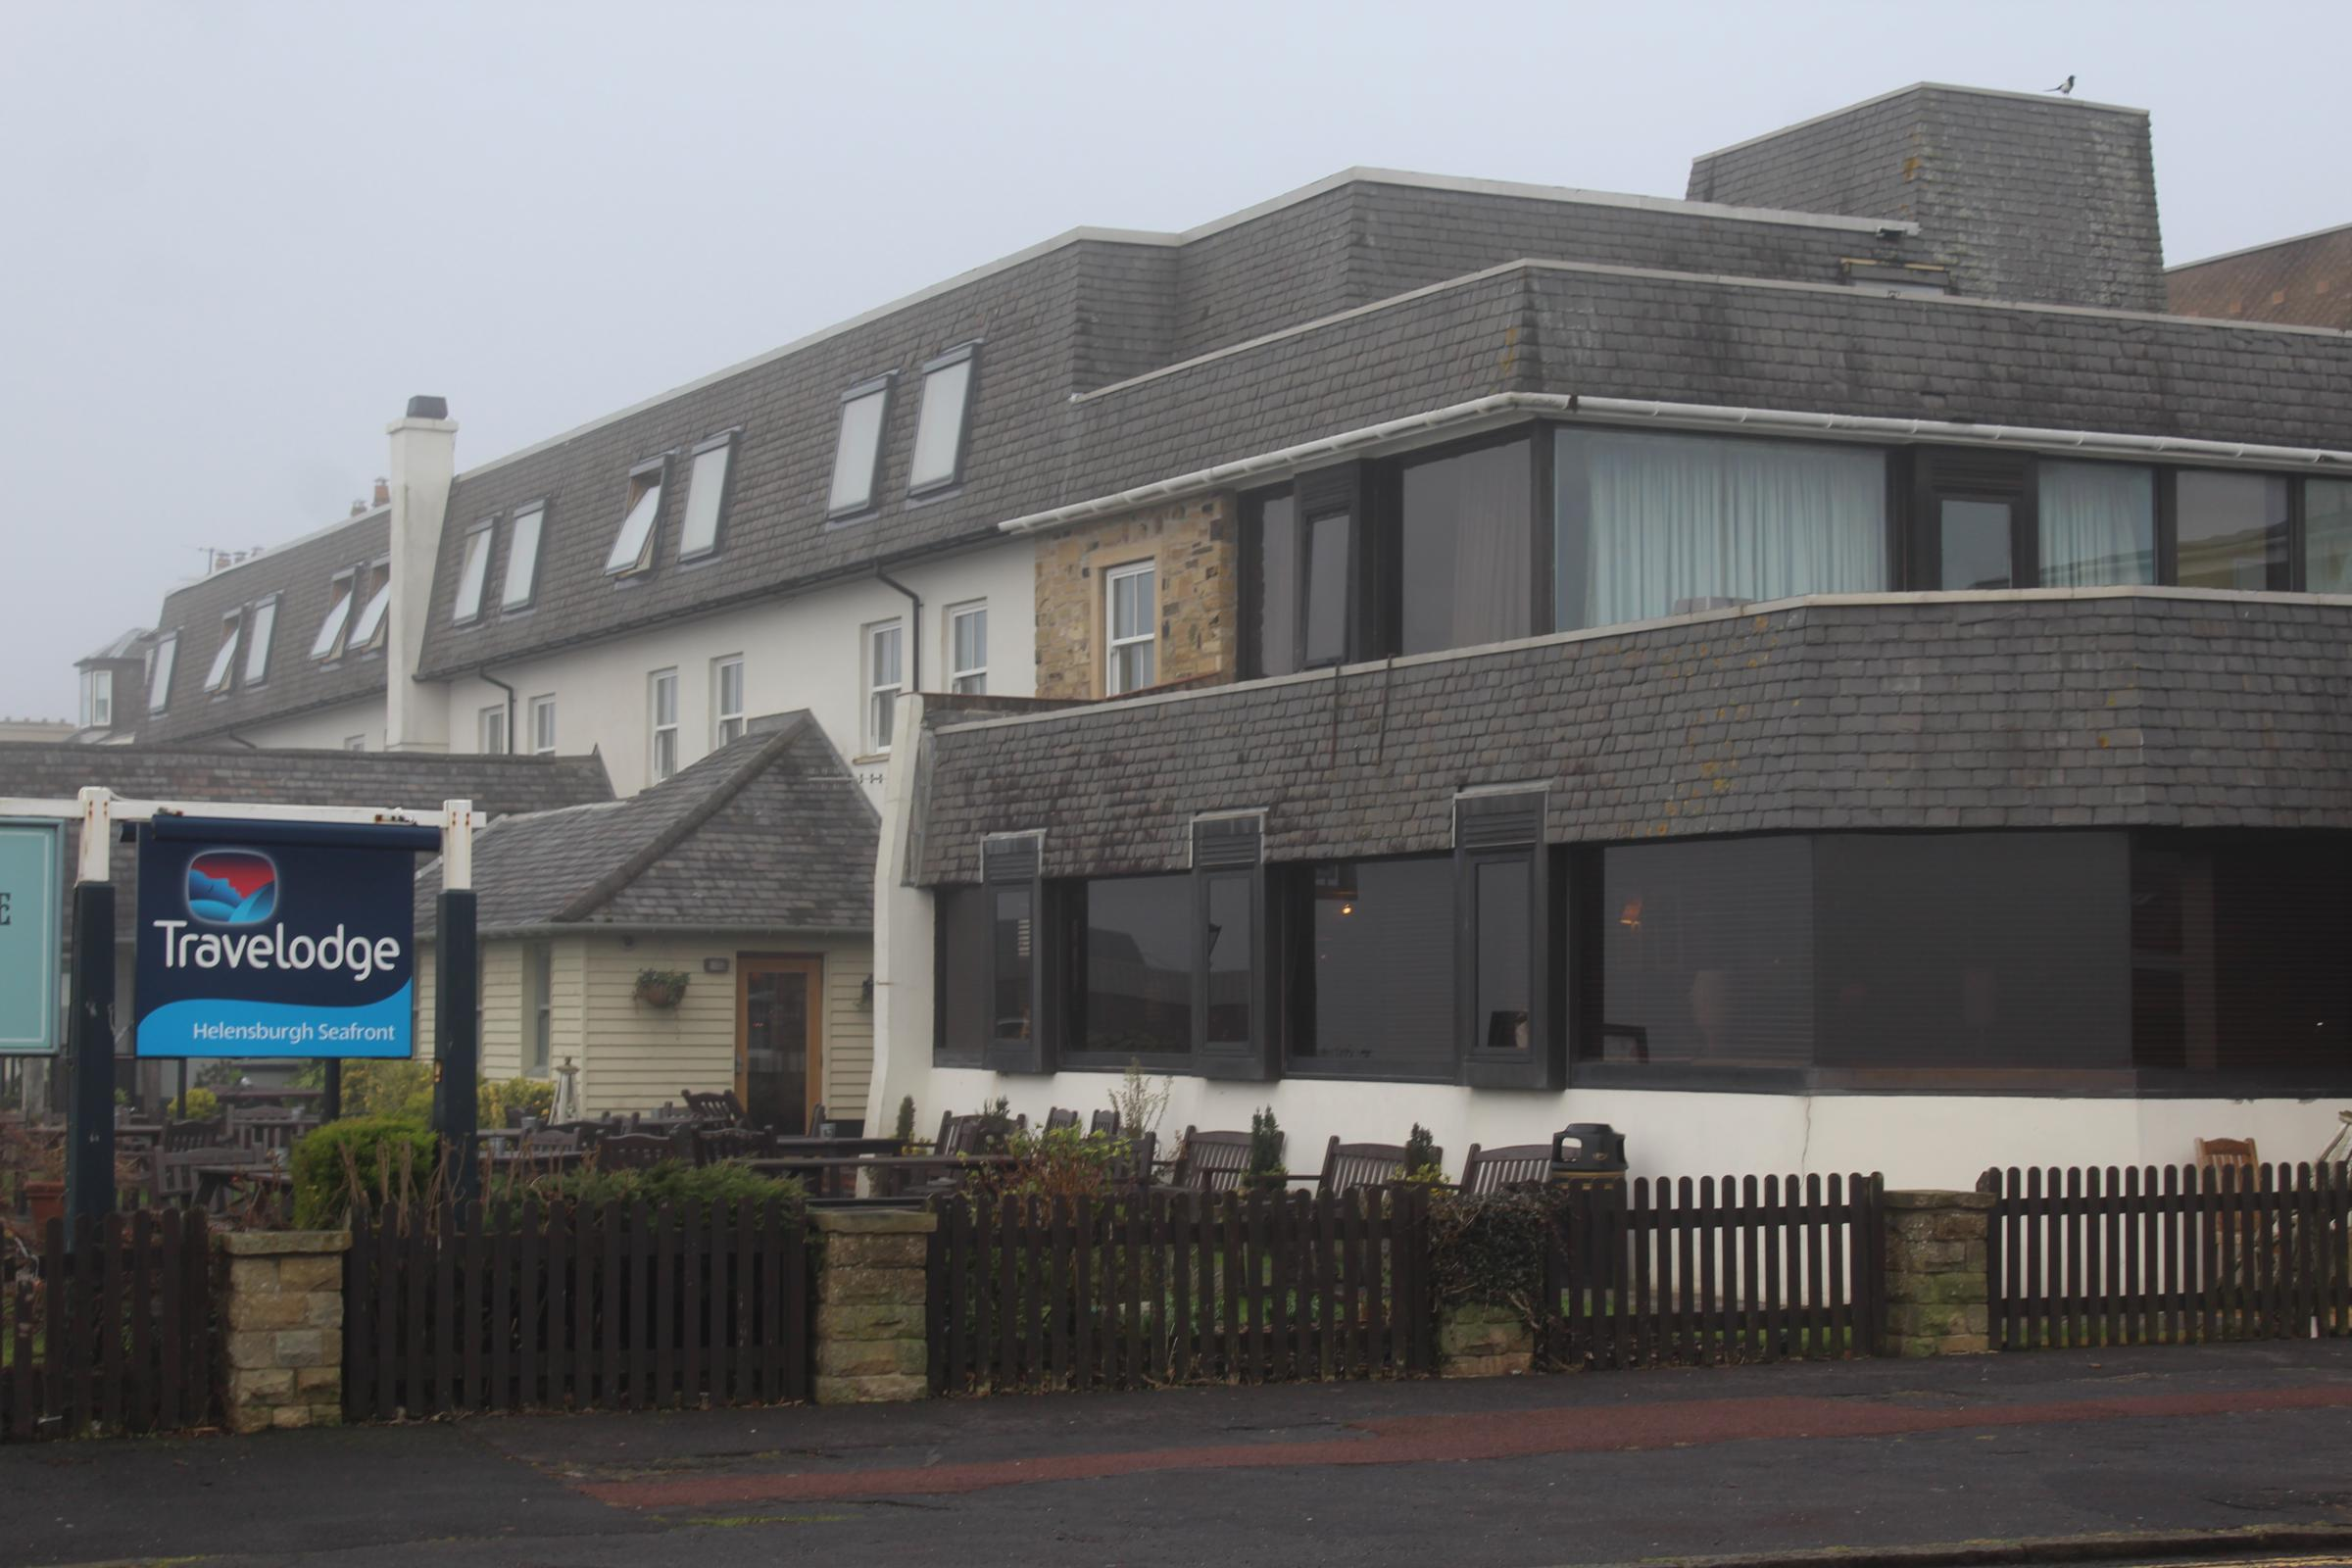 The Helensburgh Seafront Travelodge